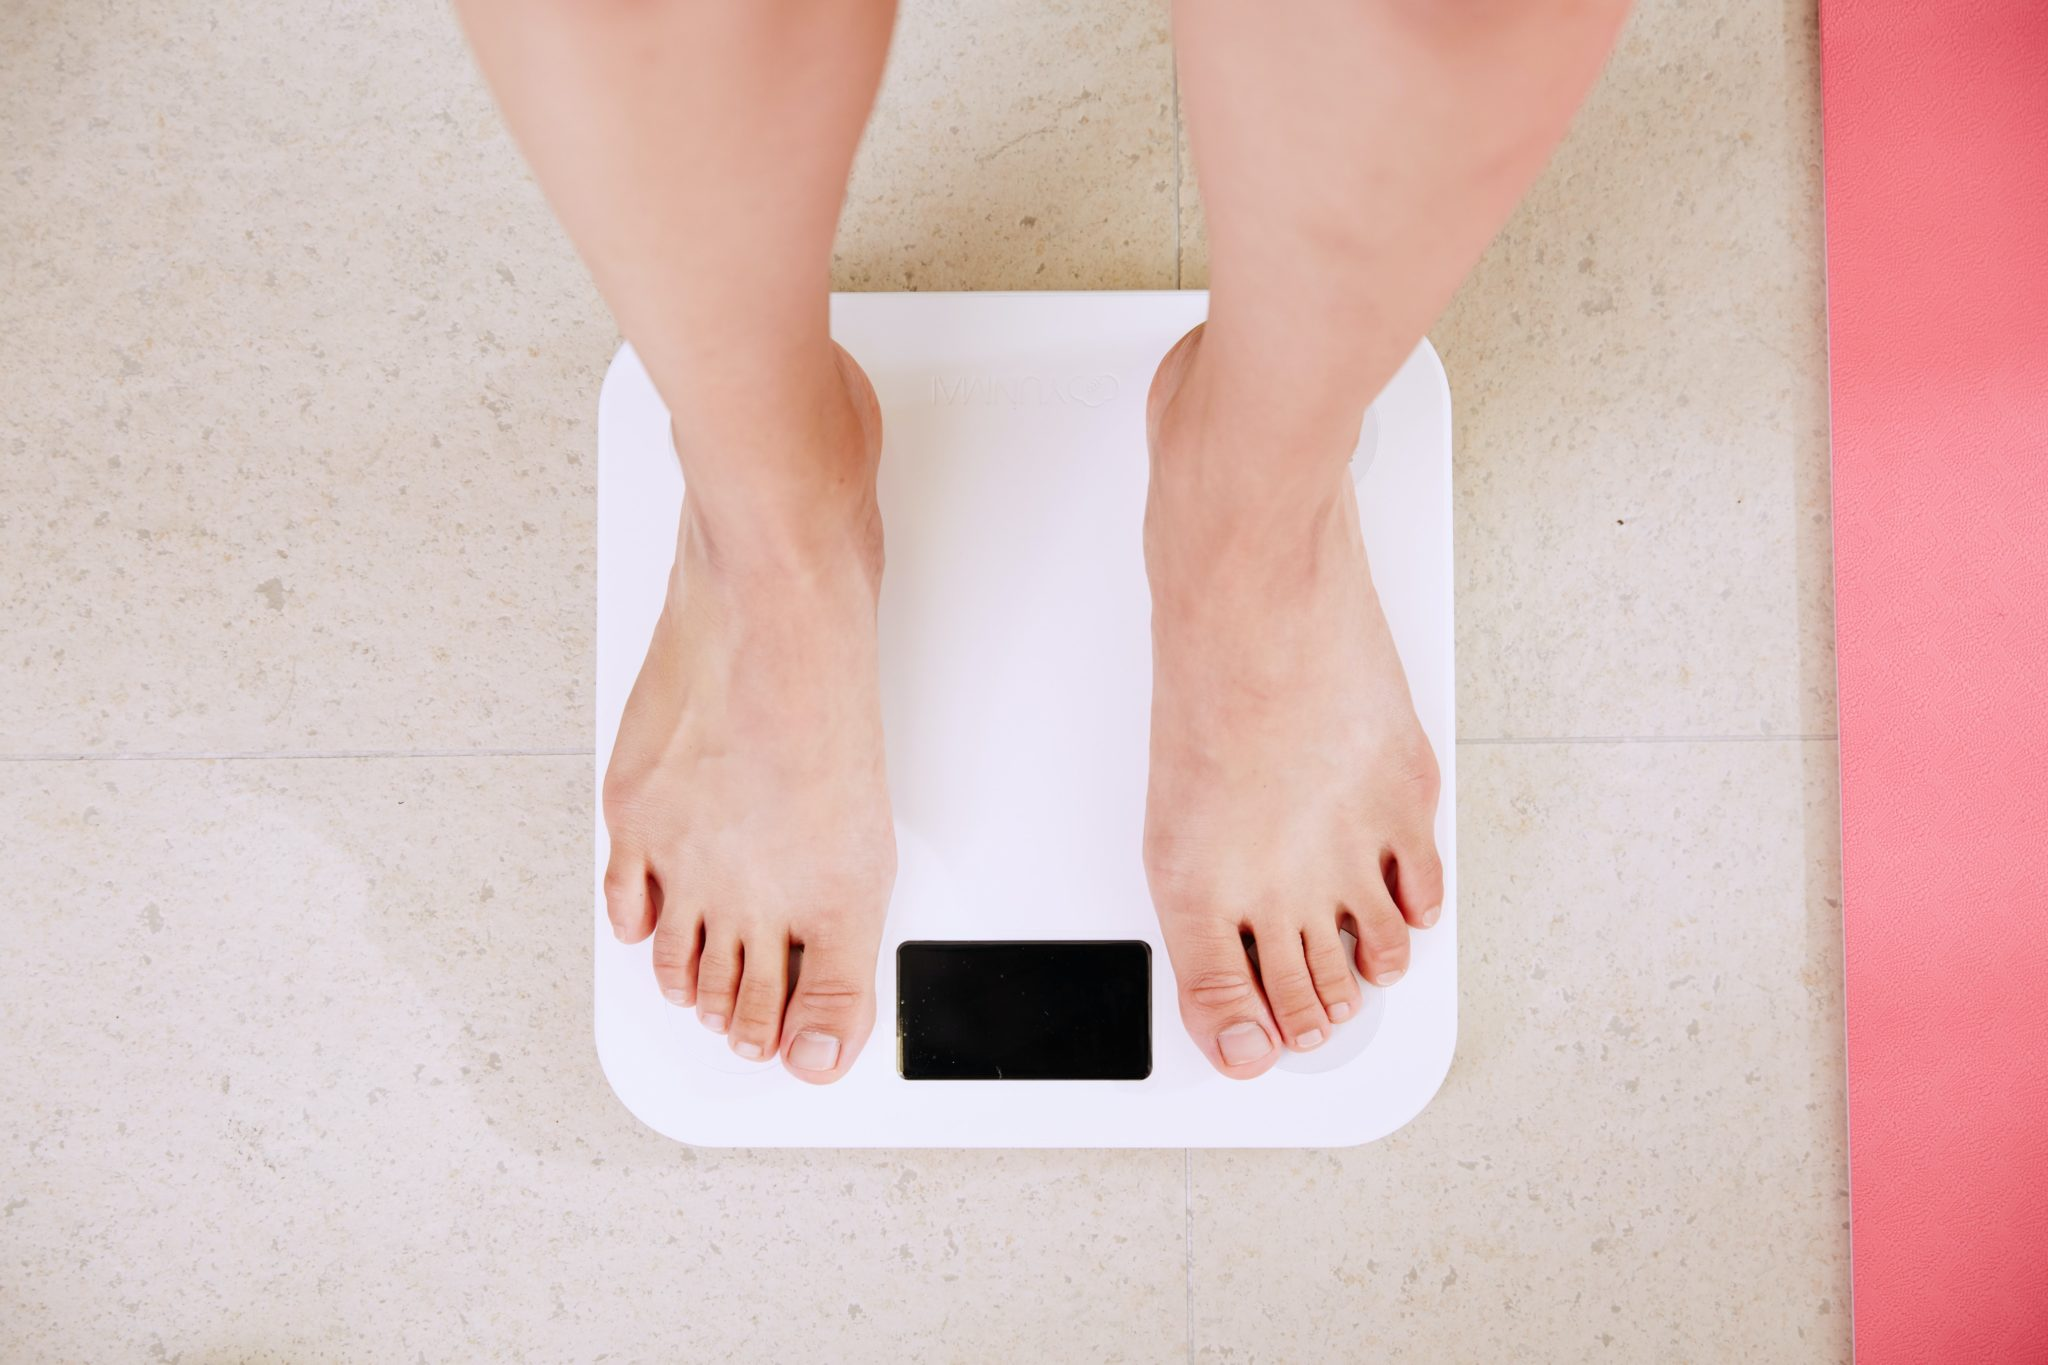 a person standing on a scale to weigh themselves